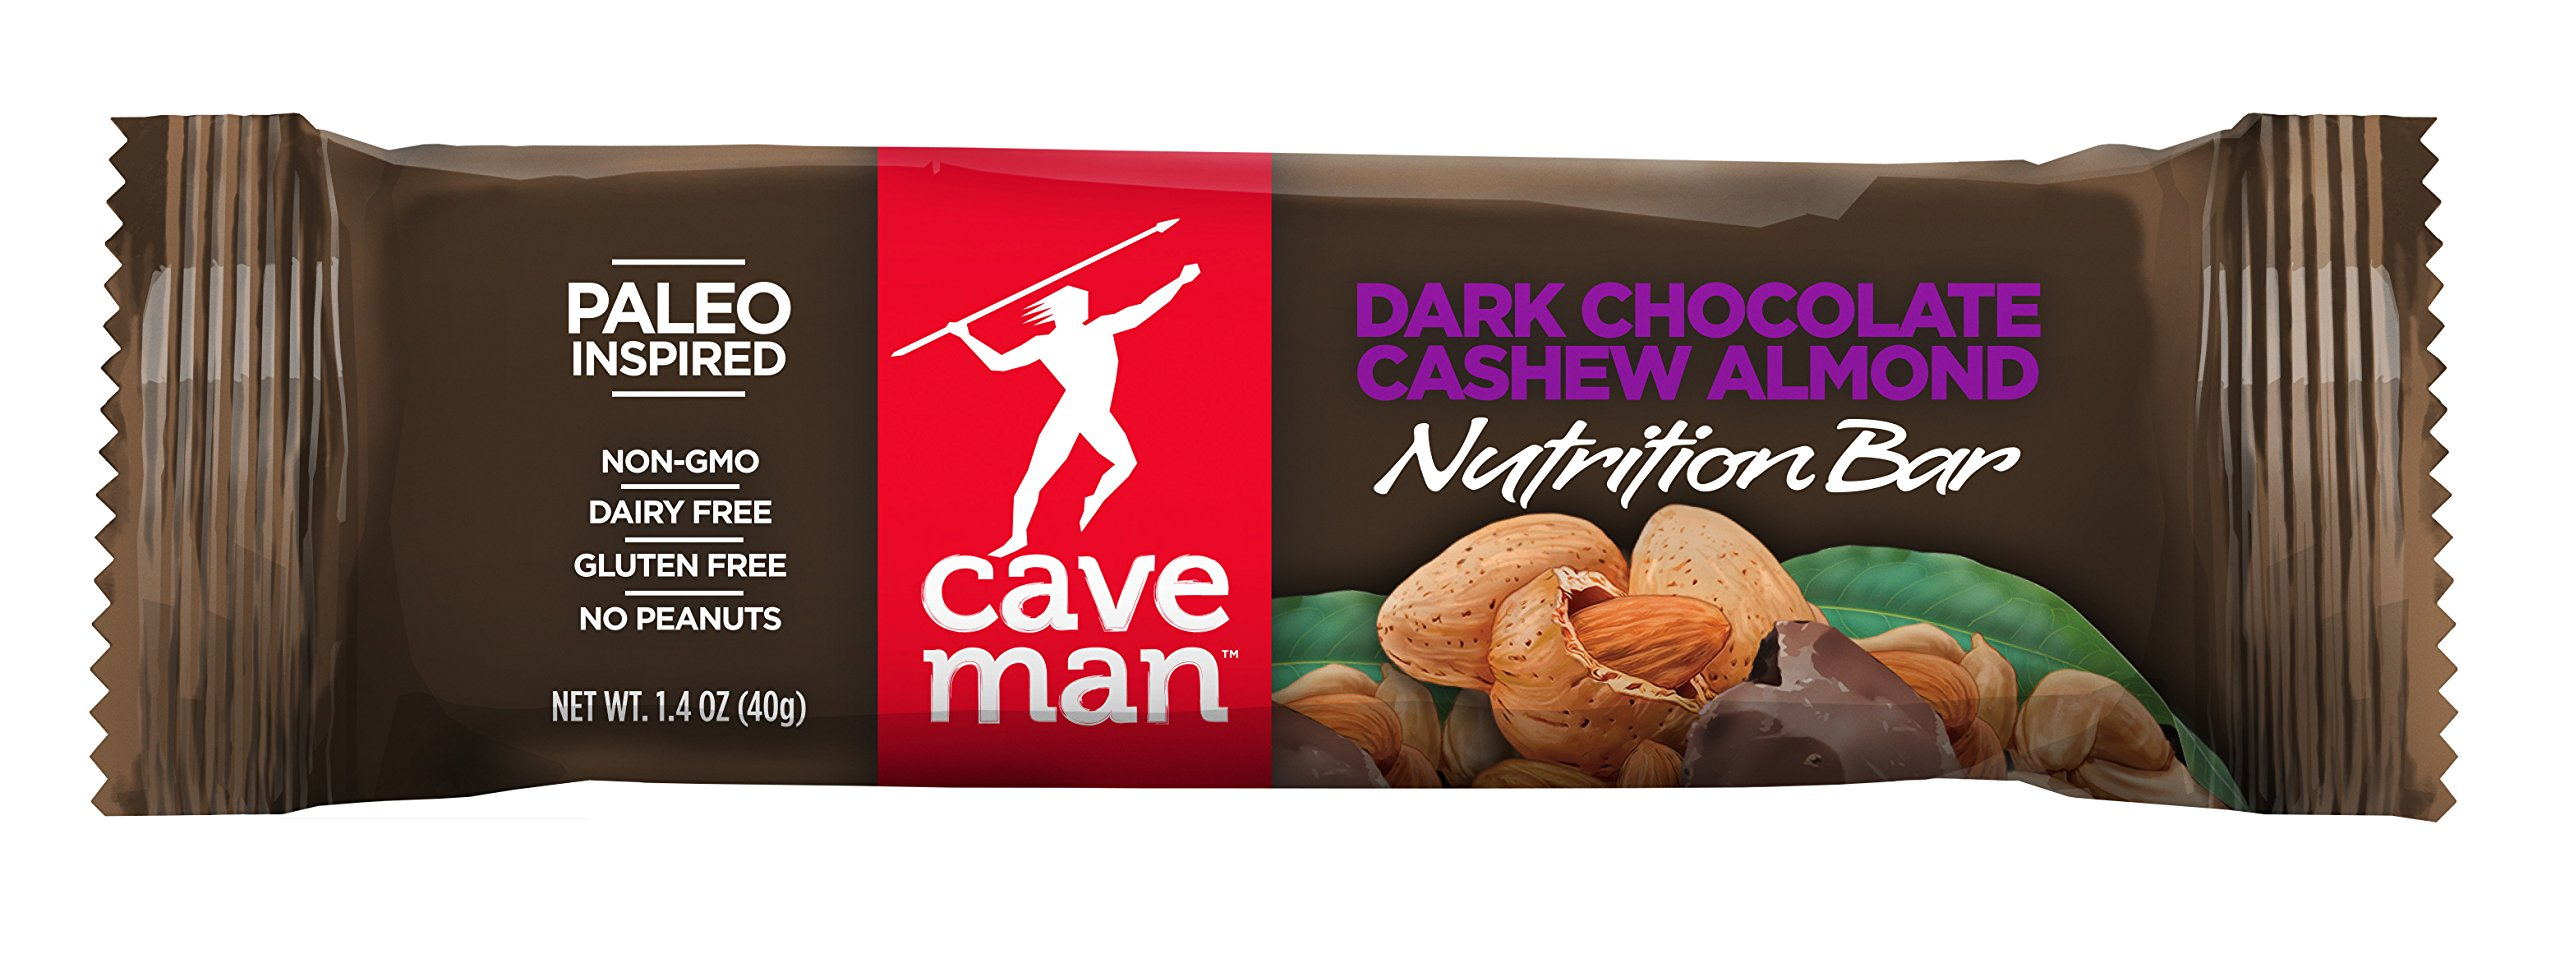 Caveman Foods Paleo-Friendly Nutrition Bar, Dark Chocolate Cashew Almond, 1.4 oz, (Pack of 15)